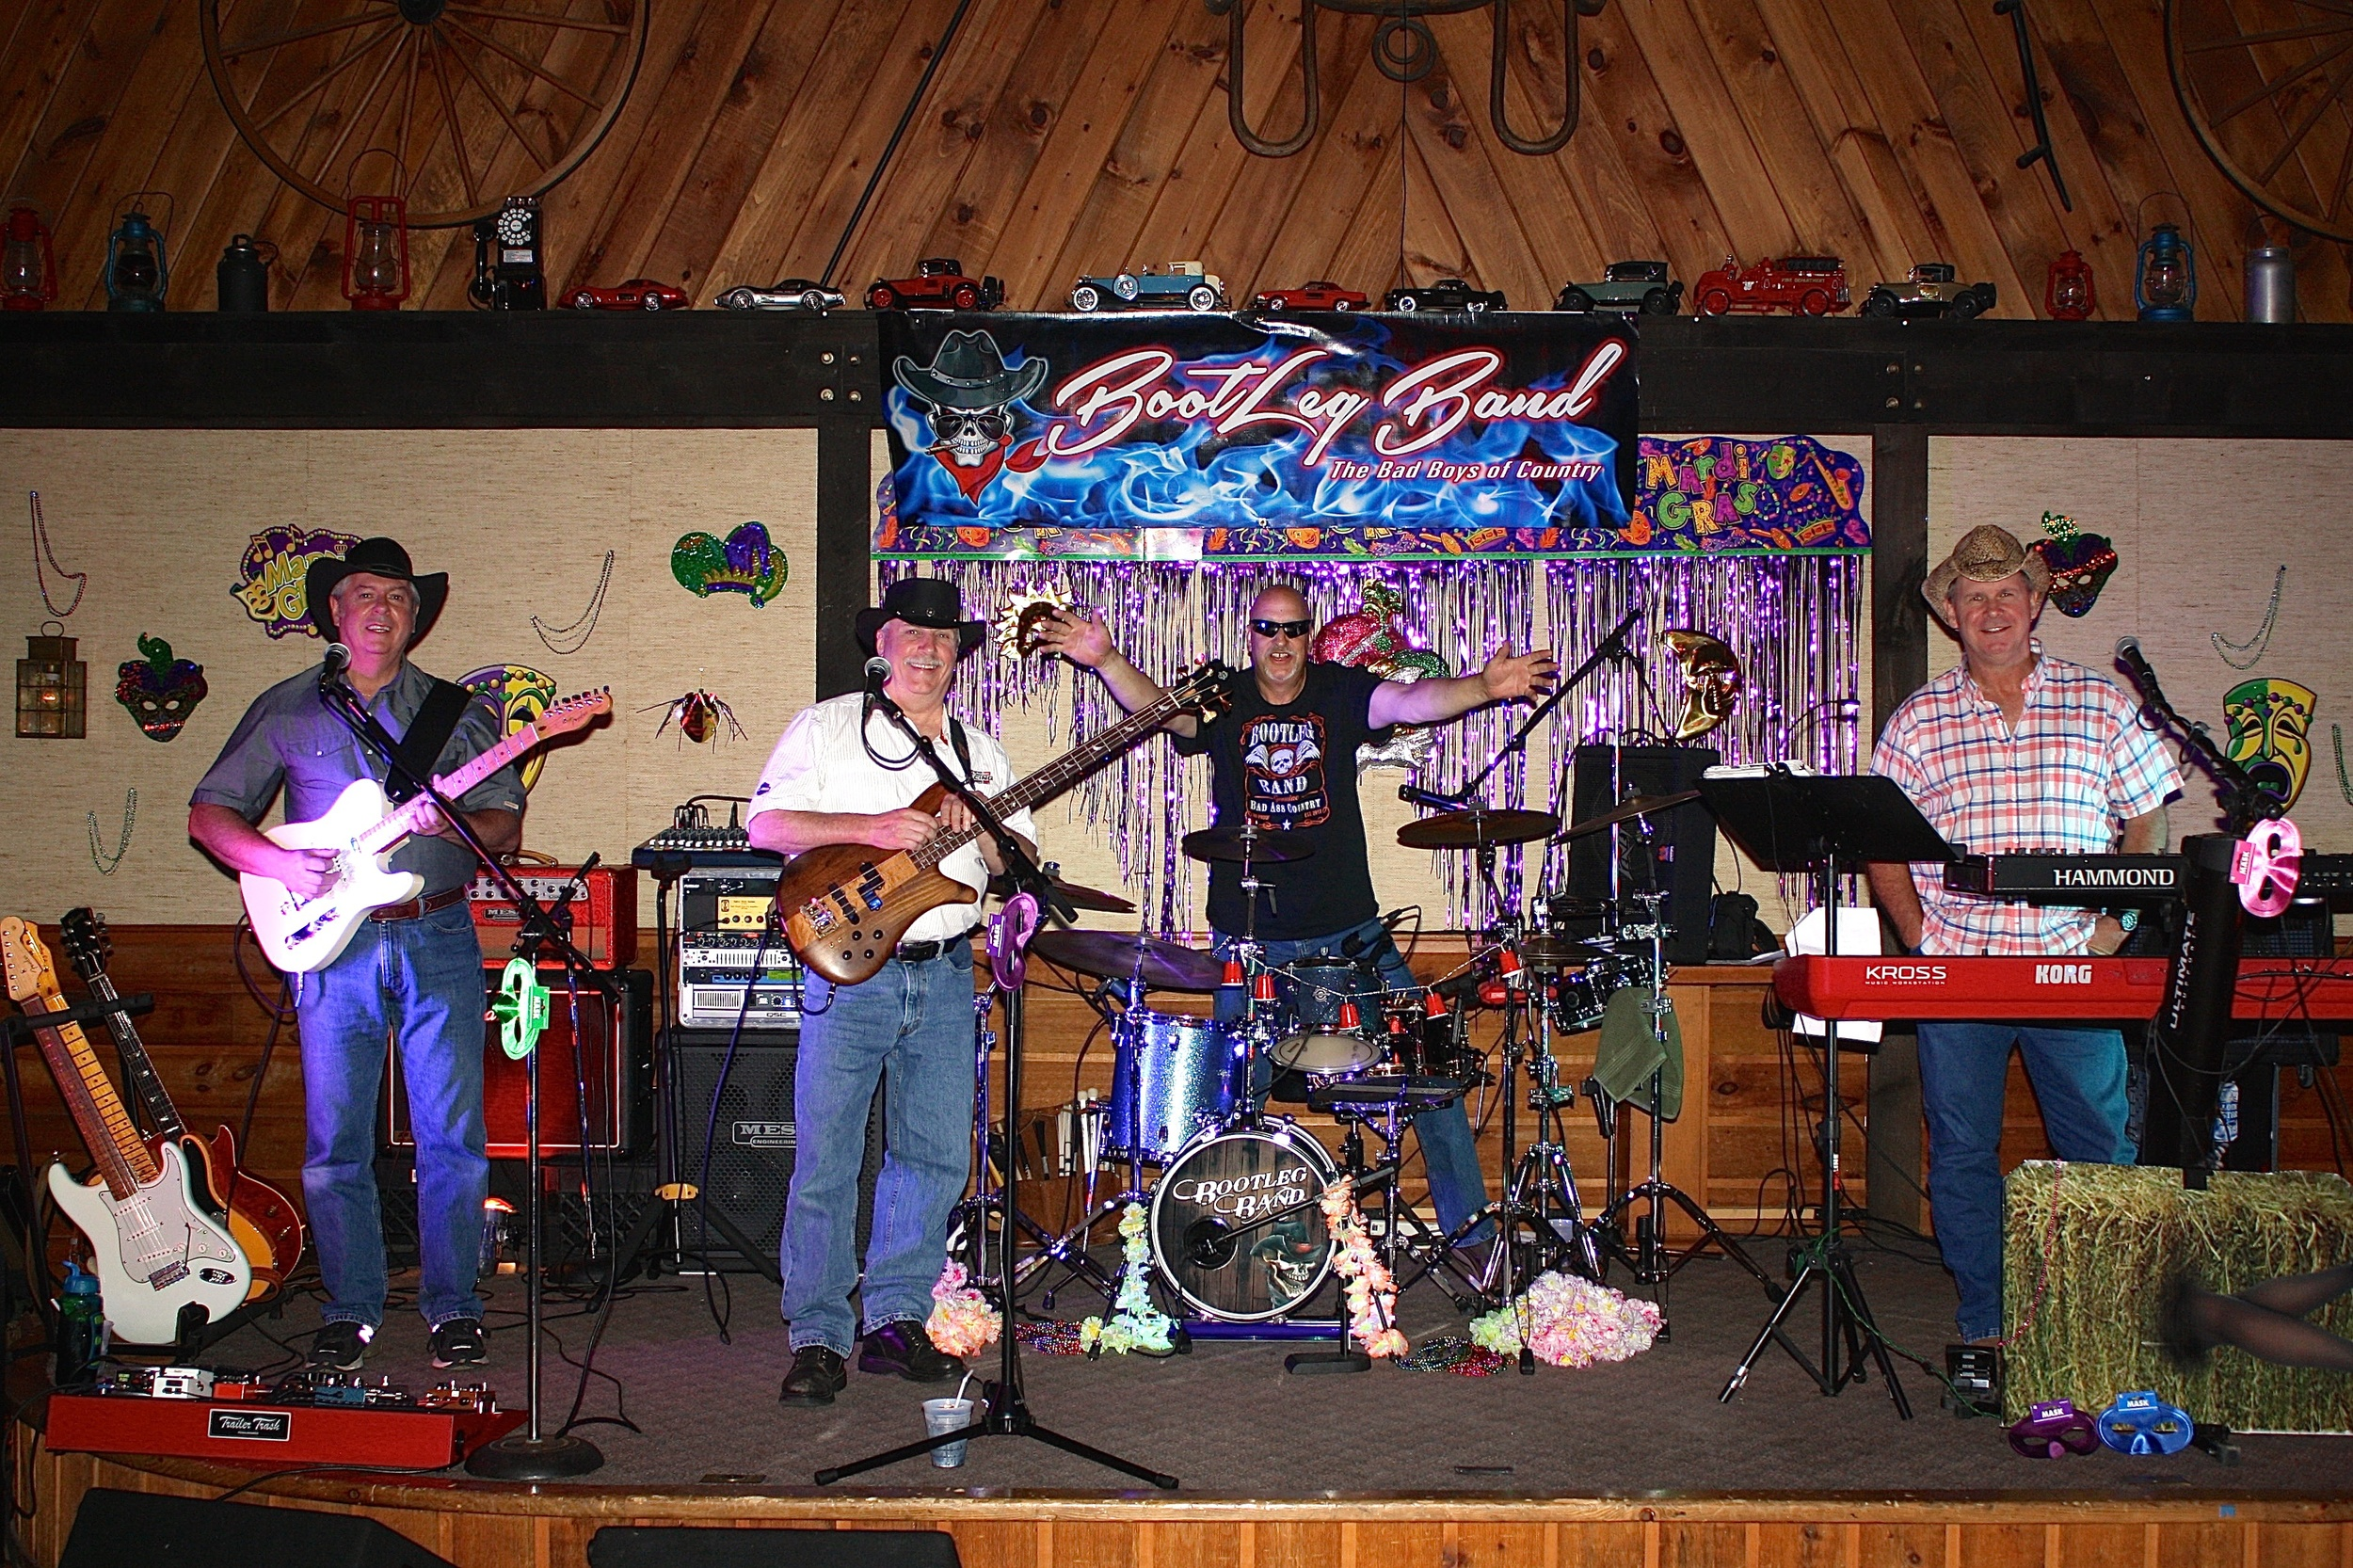 live bands every saturday night